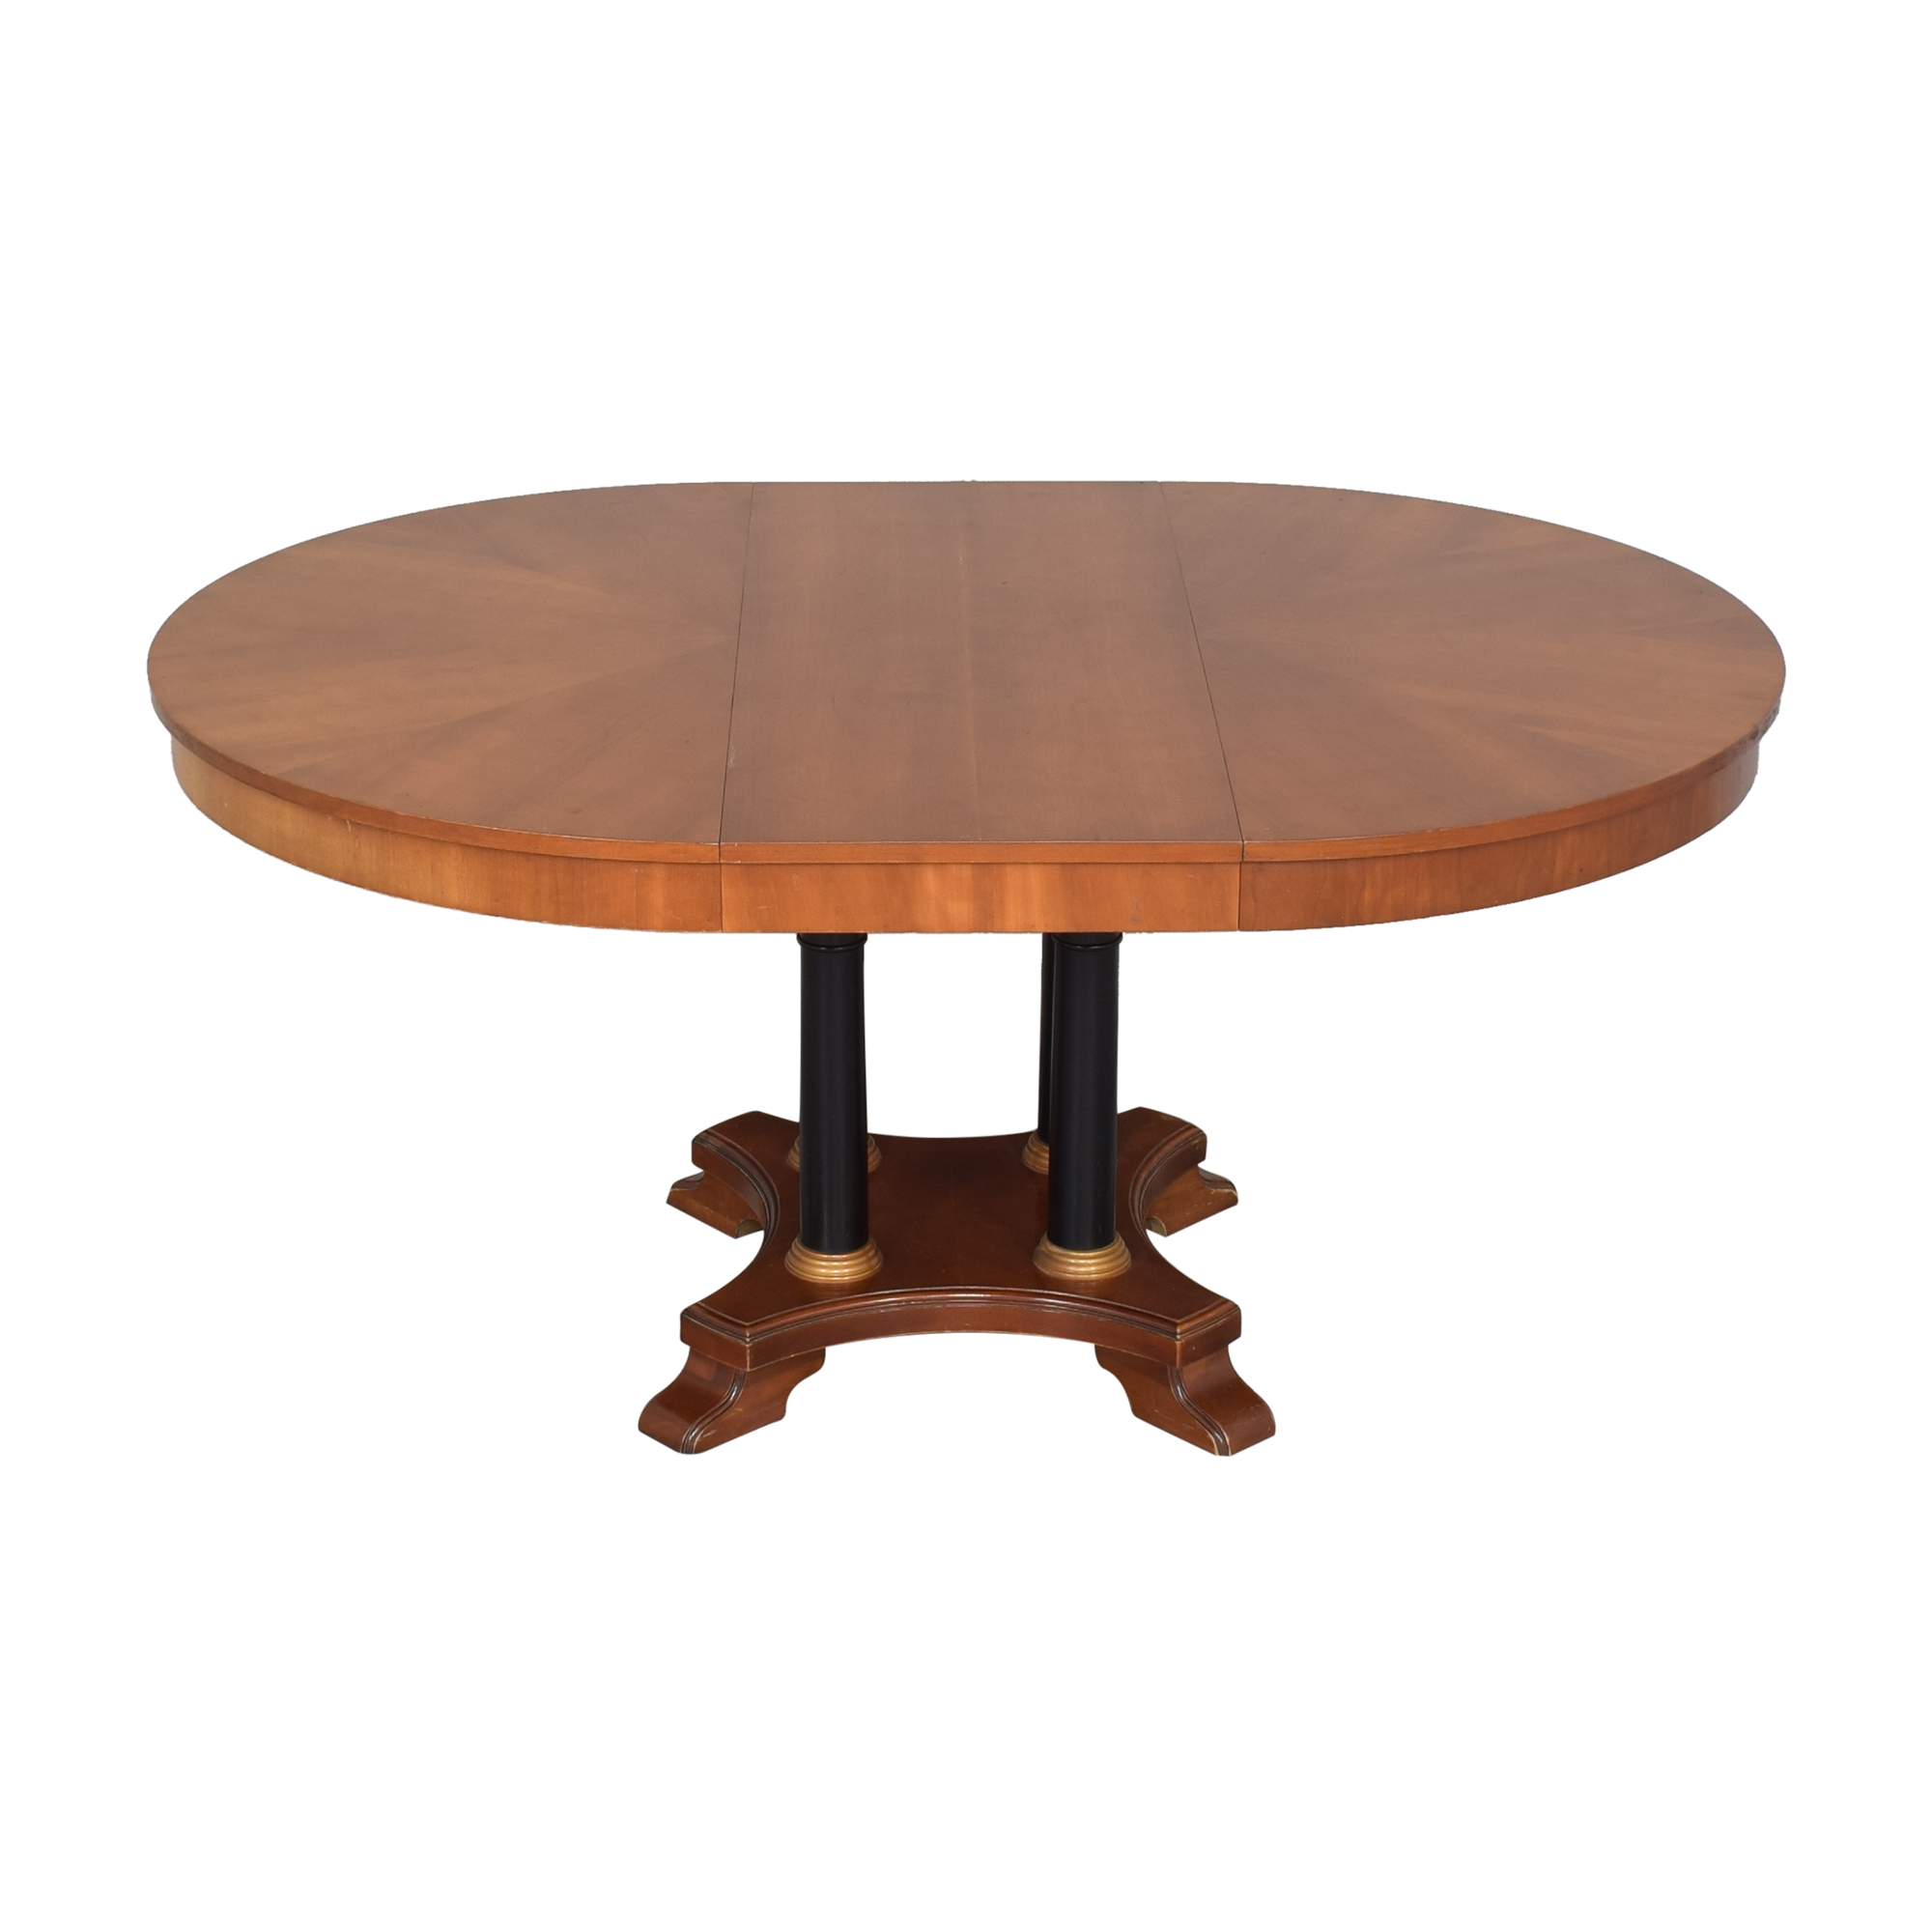 Ethan Allen Medallion Collection Round Extendable Dining Table sale